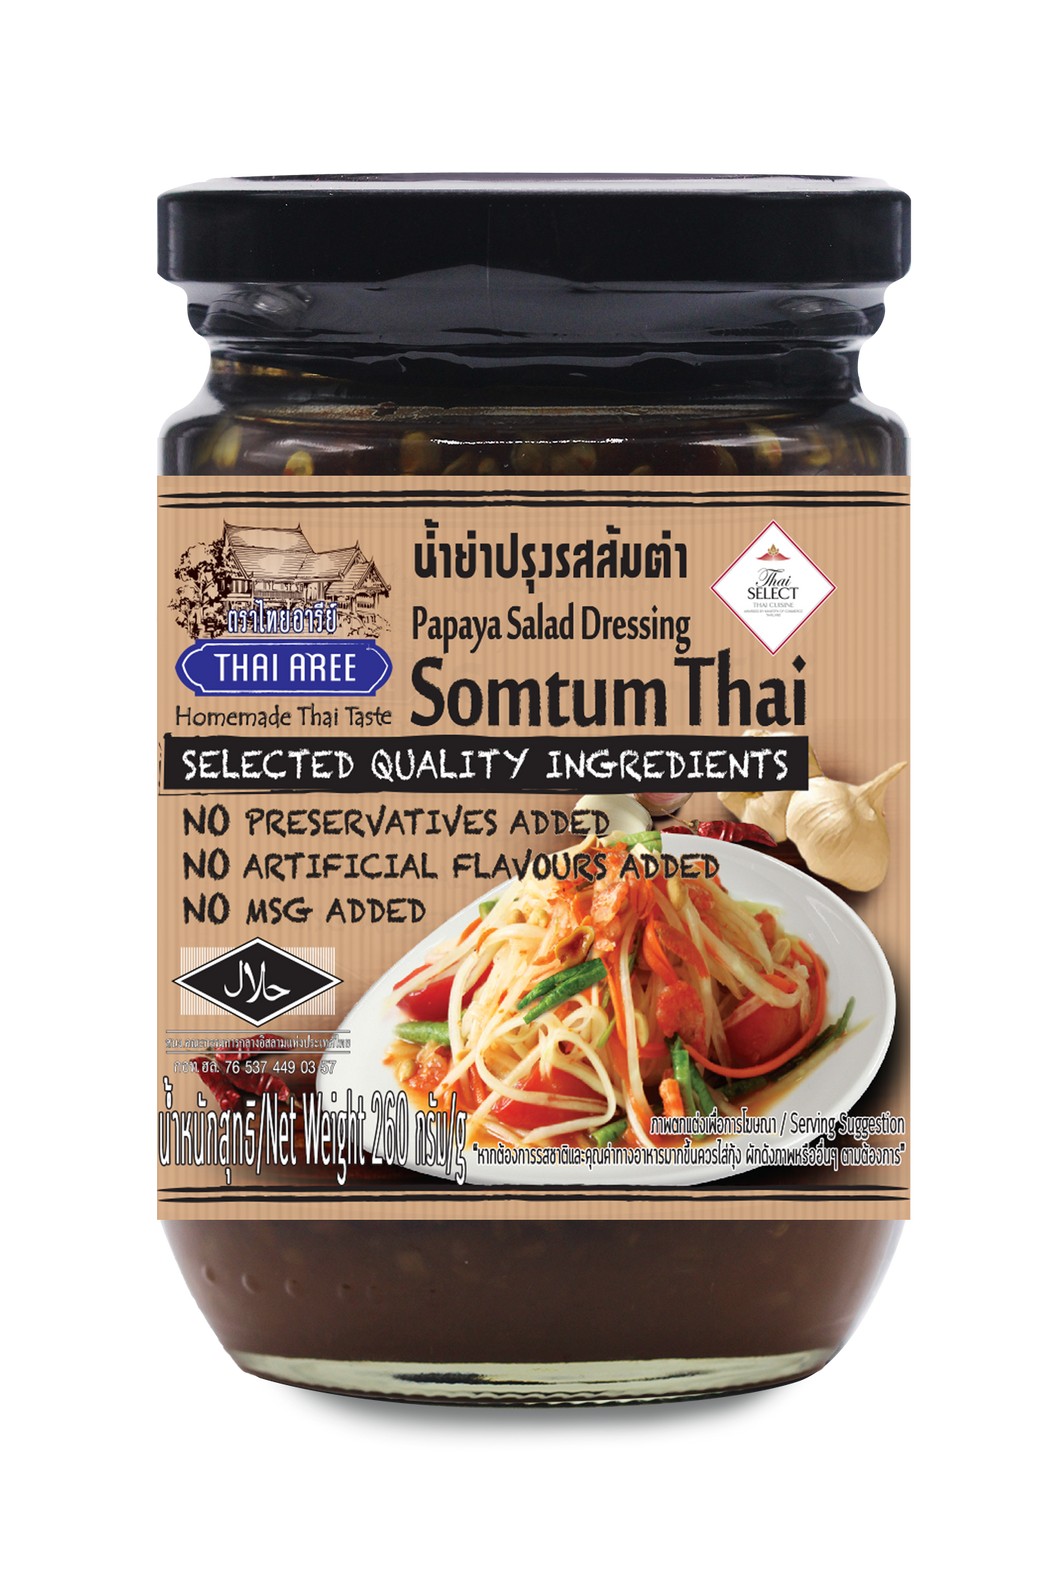 Somtum Thai Papaya Salad Dressing